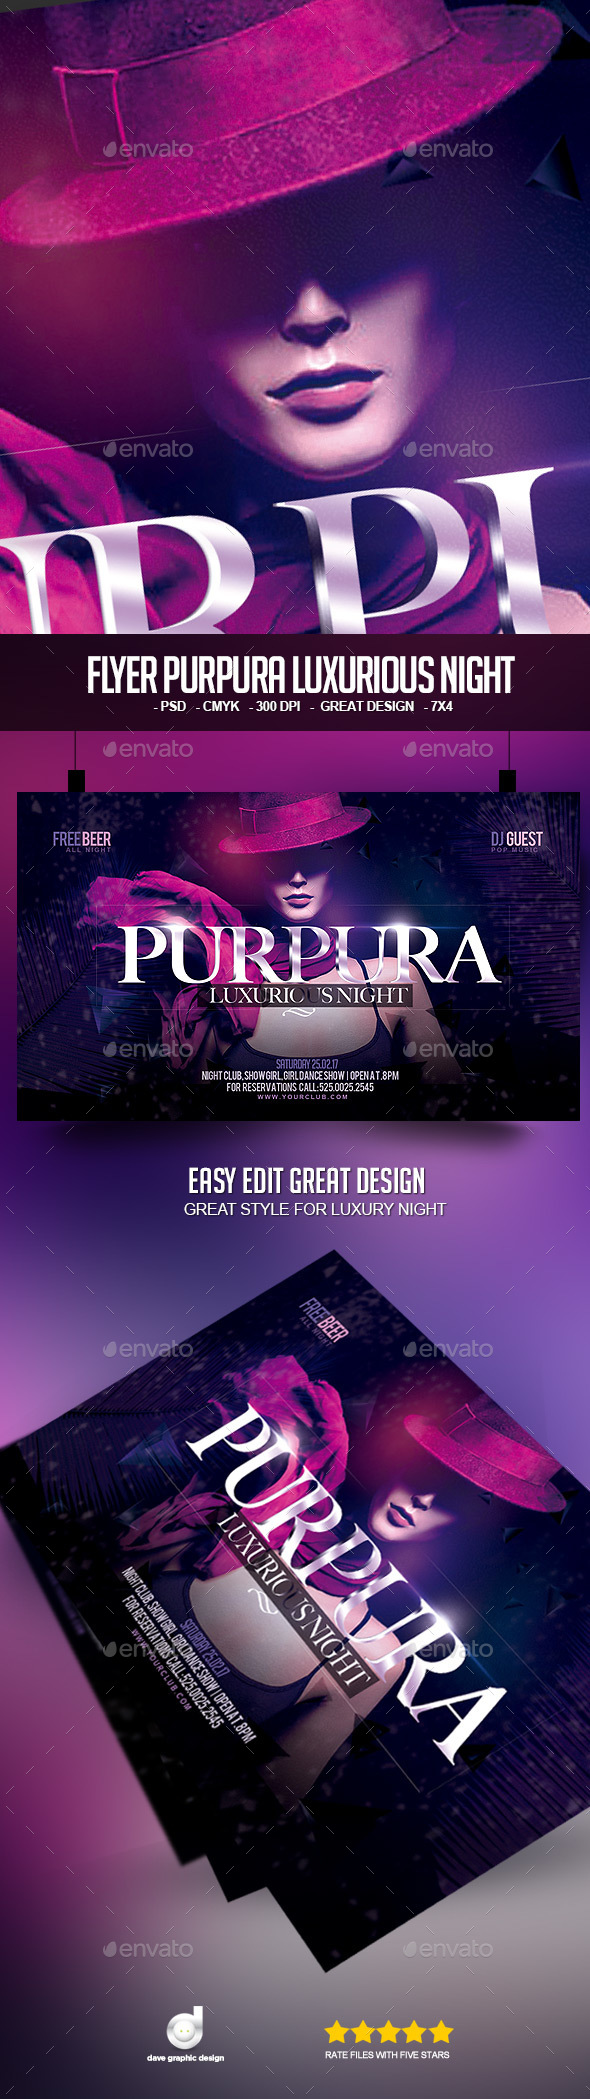 Flyer Purpura Luxurious Night  - Clubs & Parties Events